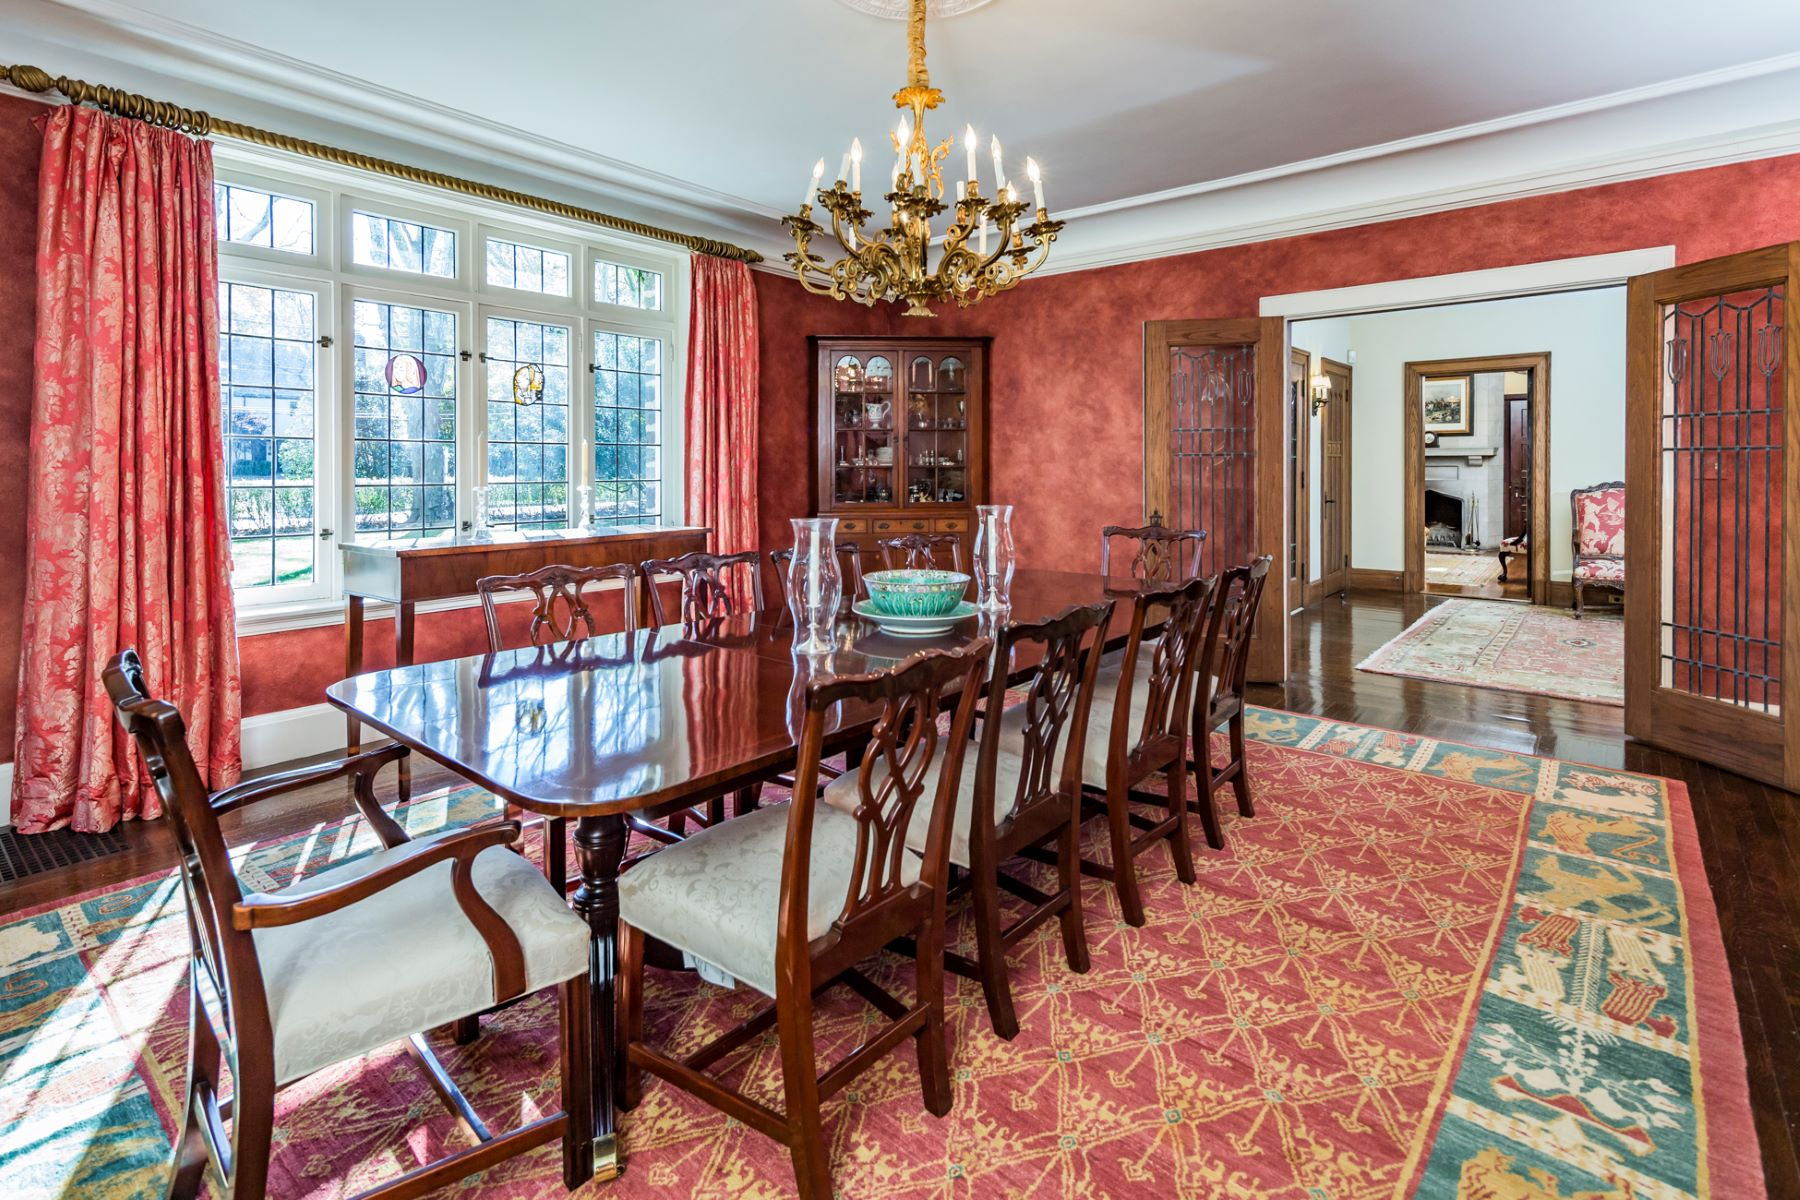 Additional photo for property listing at Turning Heads on Hodge Road for Almost A Century 149 Hodge Road, Princeton, Нью-Джерси 08540 Соединенные Штаты